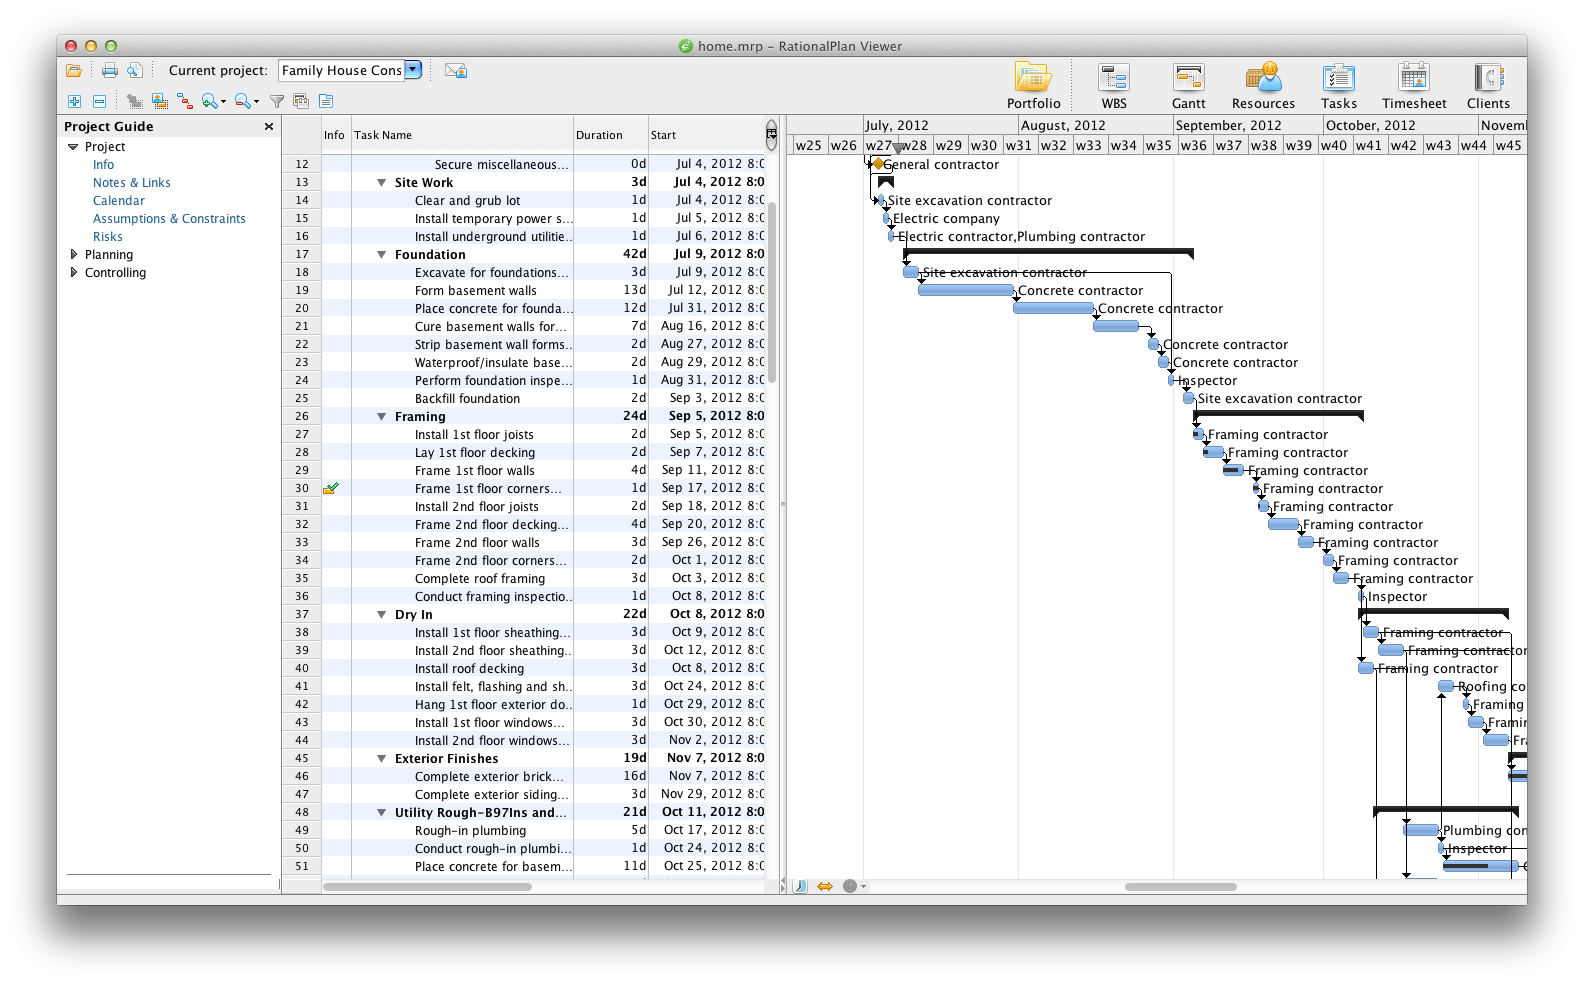 RationalPlan Project Viewer for Mac 4.15.0